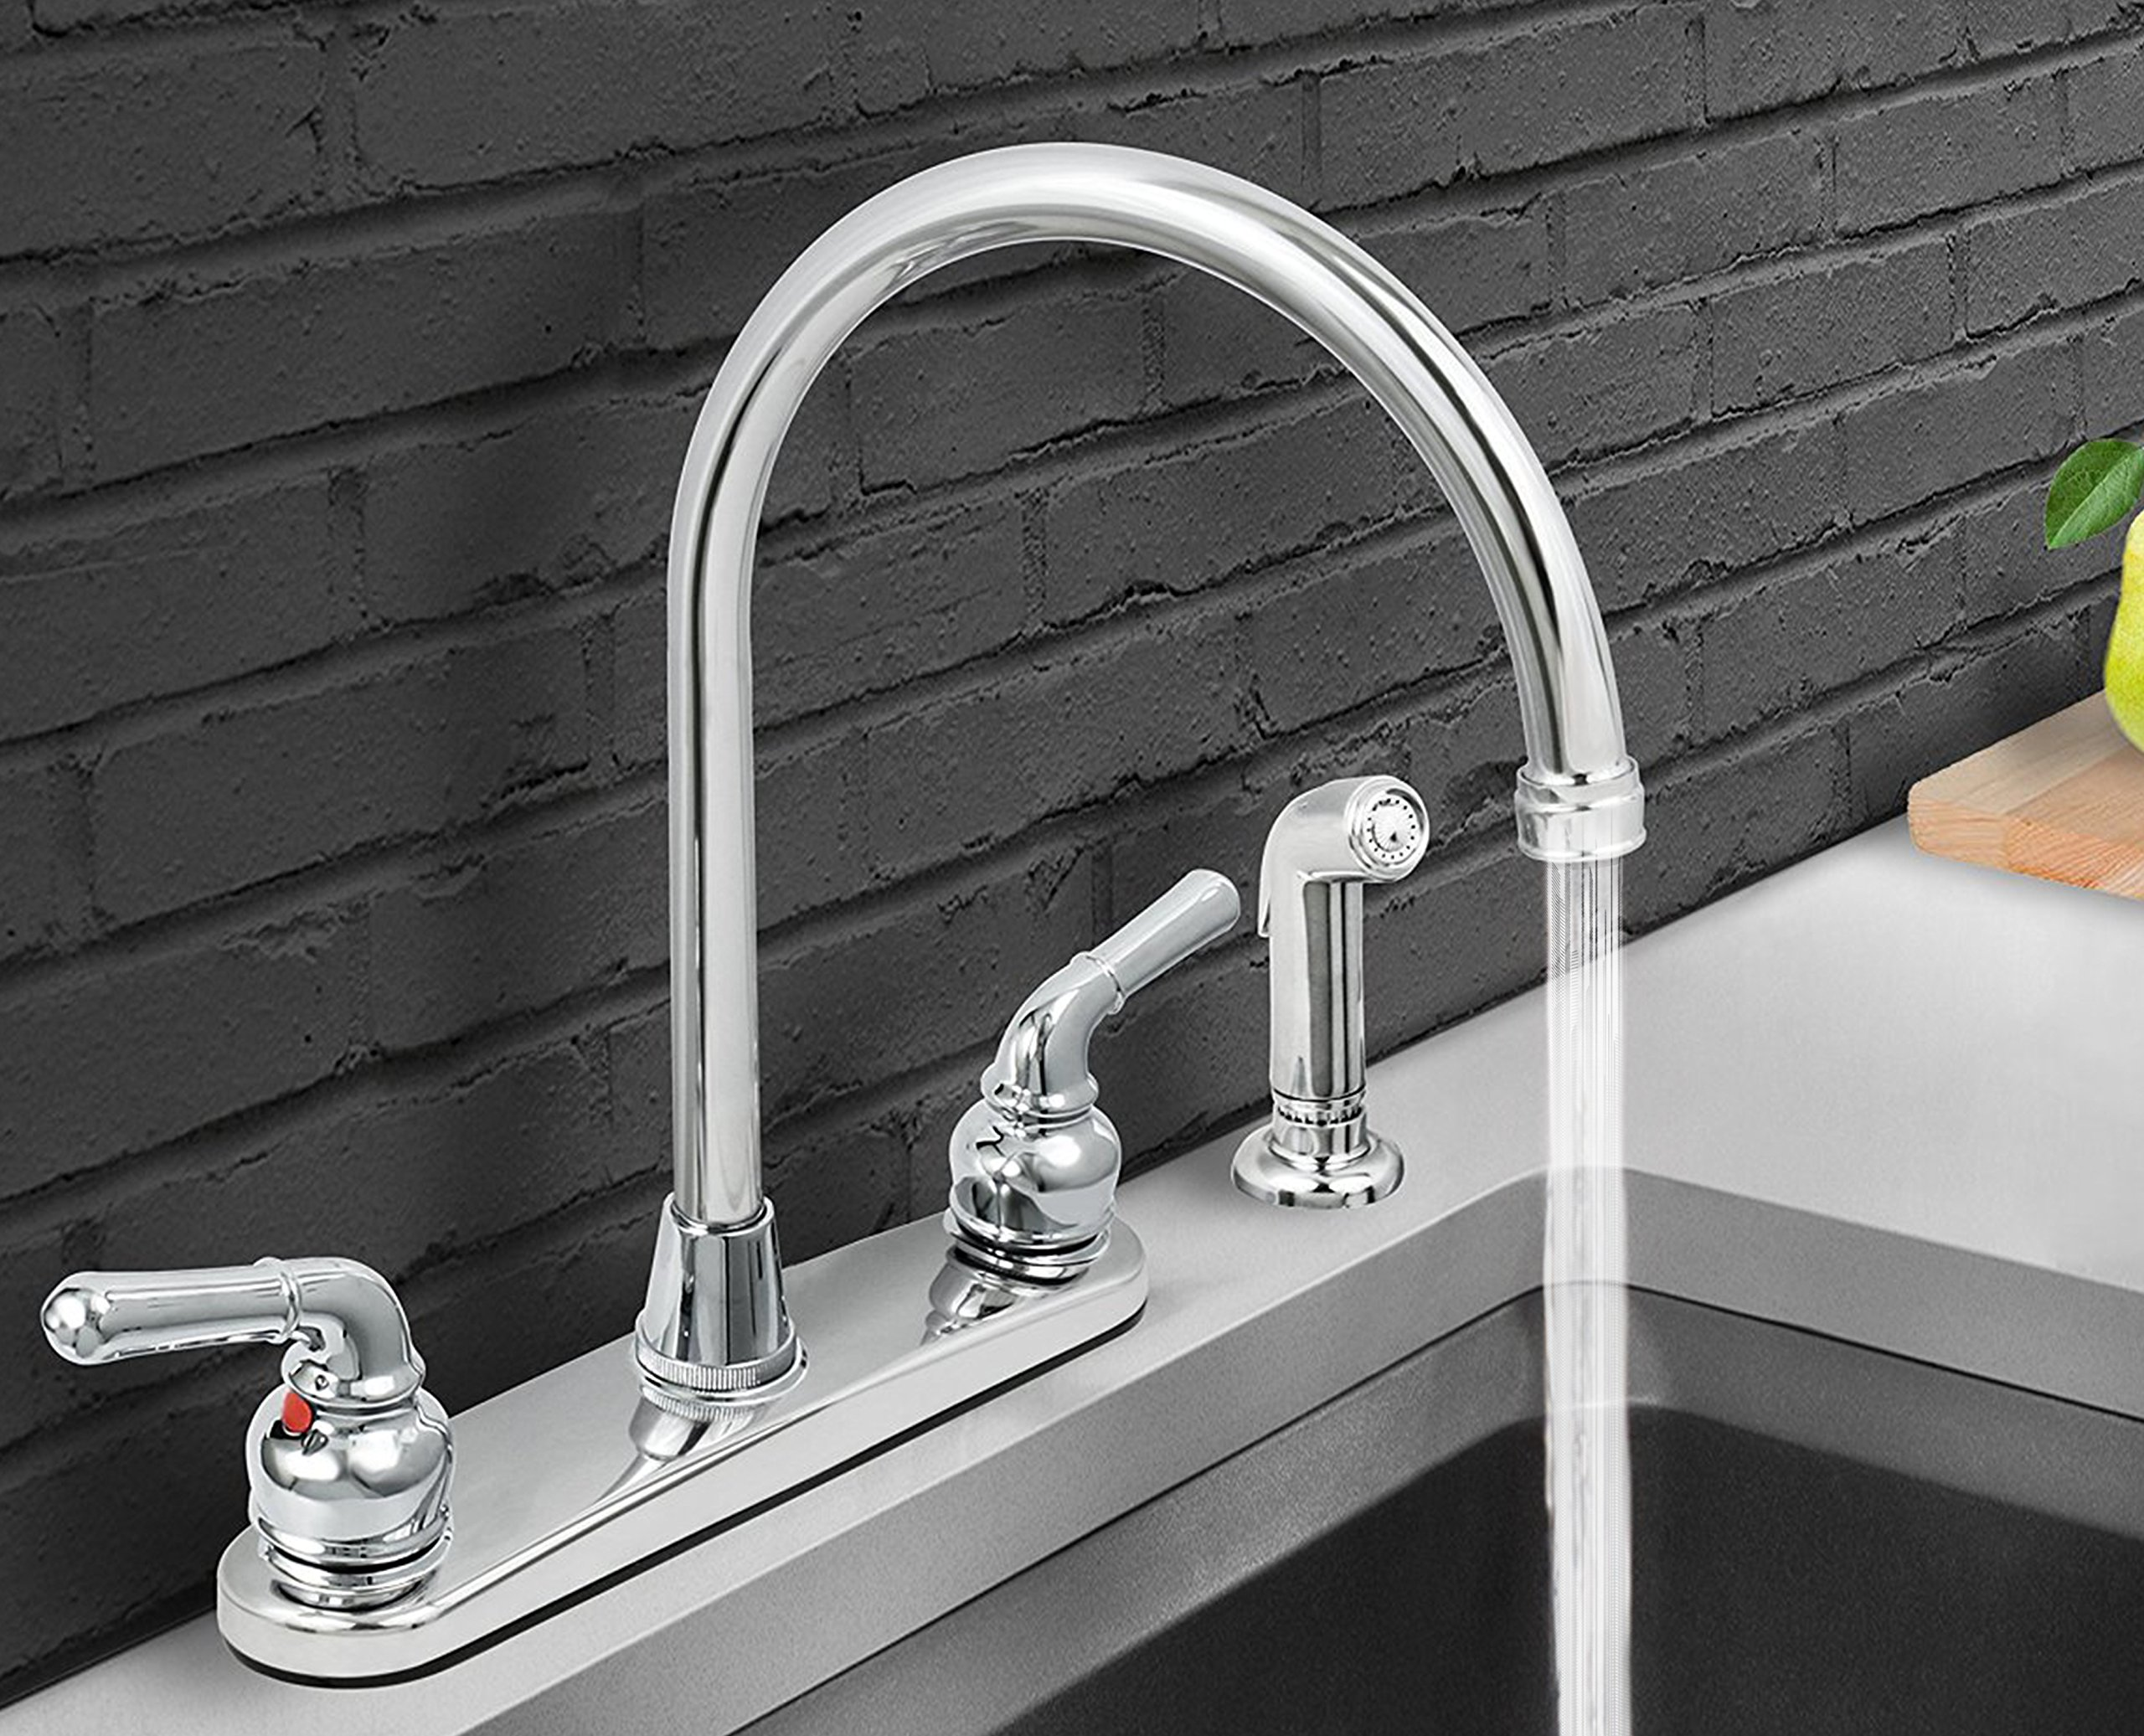 Everflow 17188 Kitchen Faucet with Spray, High Arc Swivel Spout ...